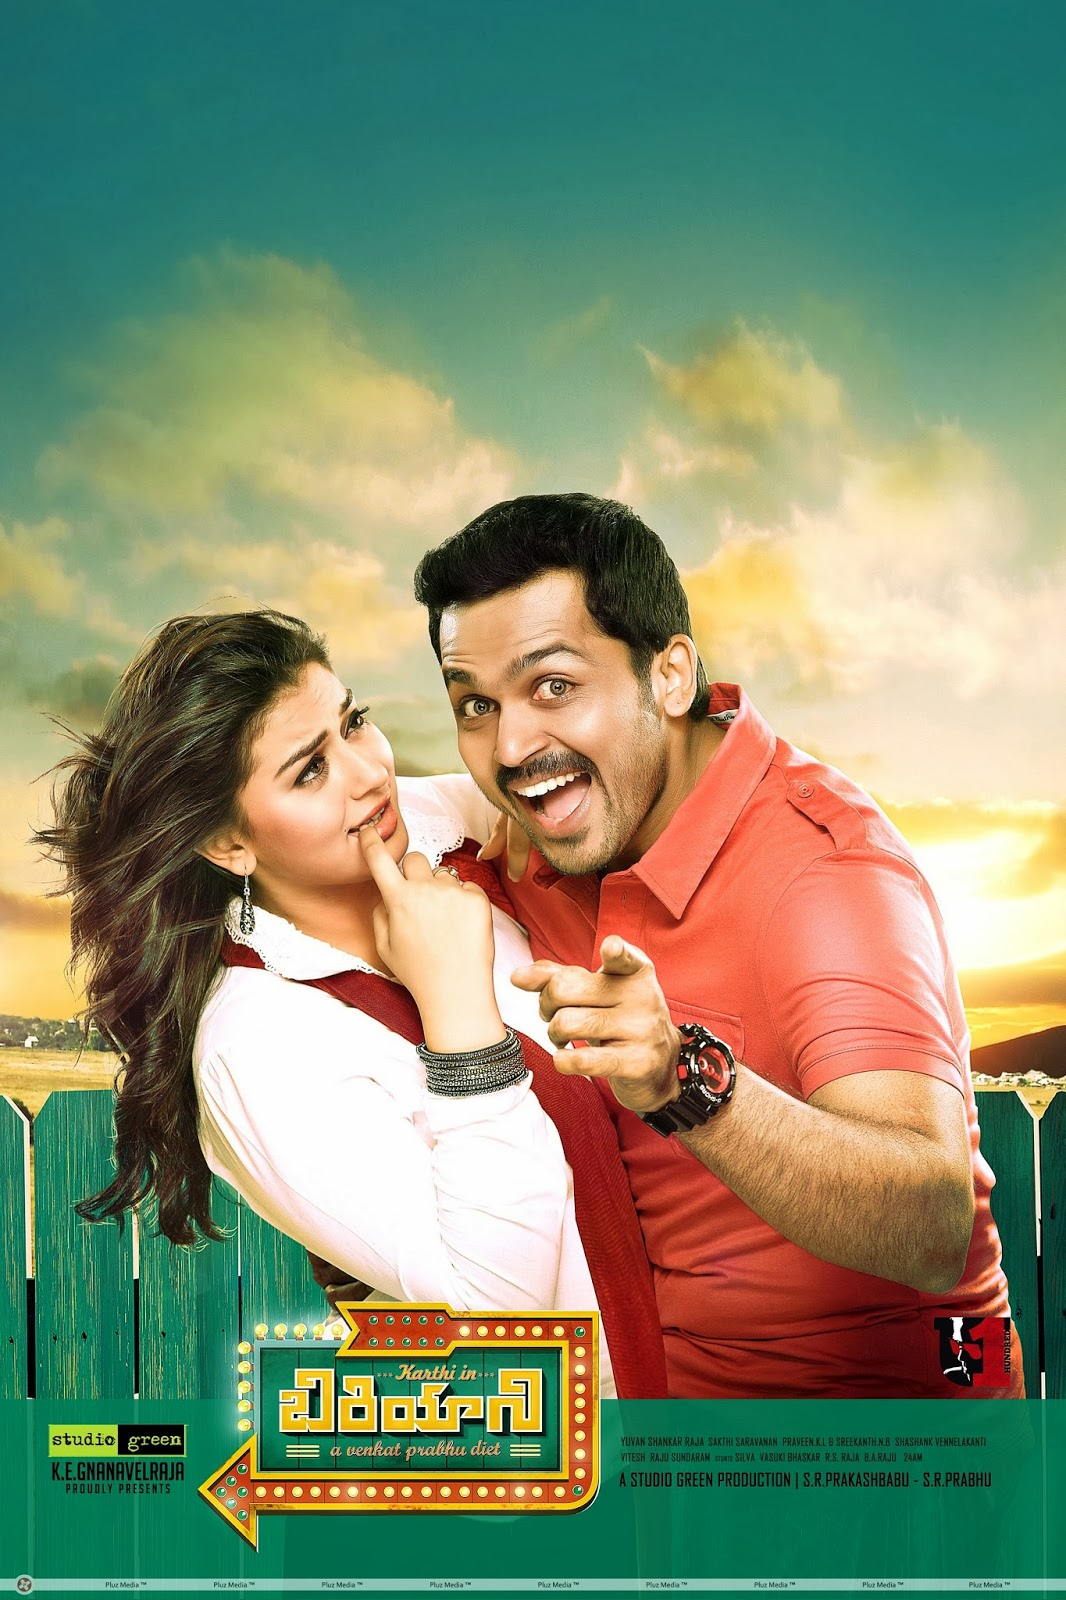 Watch Biriyani (2013) Telugu Dubbed Biriyani In Telugu CamRip Full Movie Watch Online For Free Download